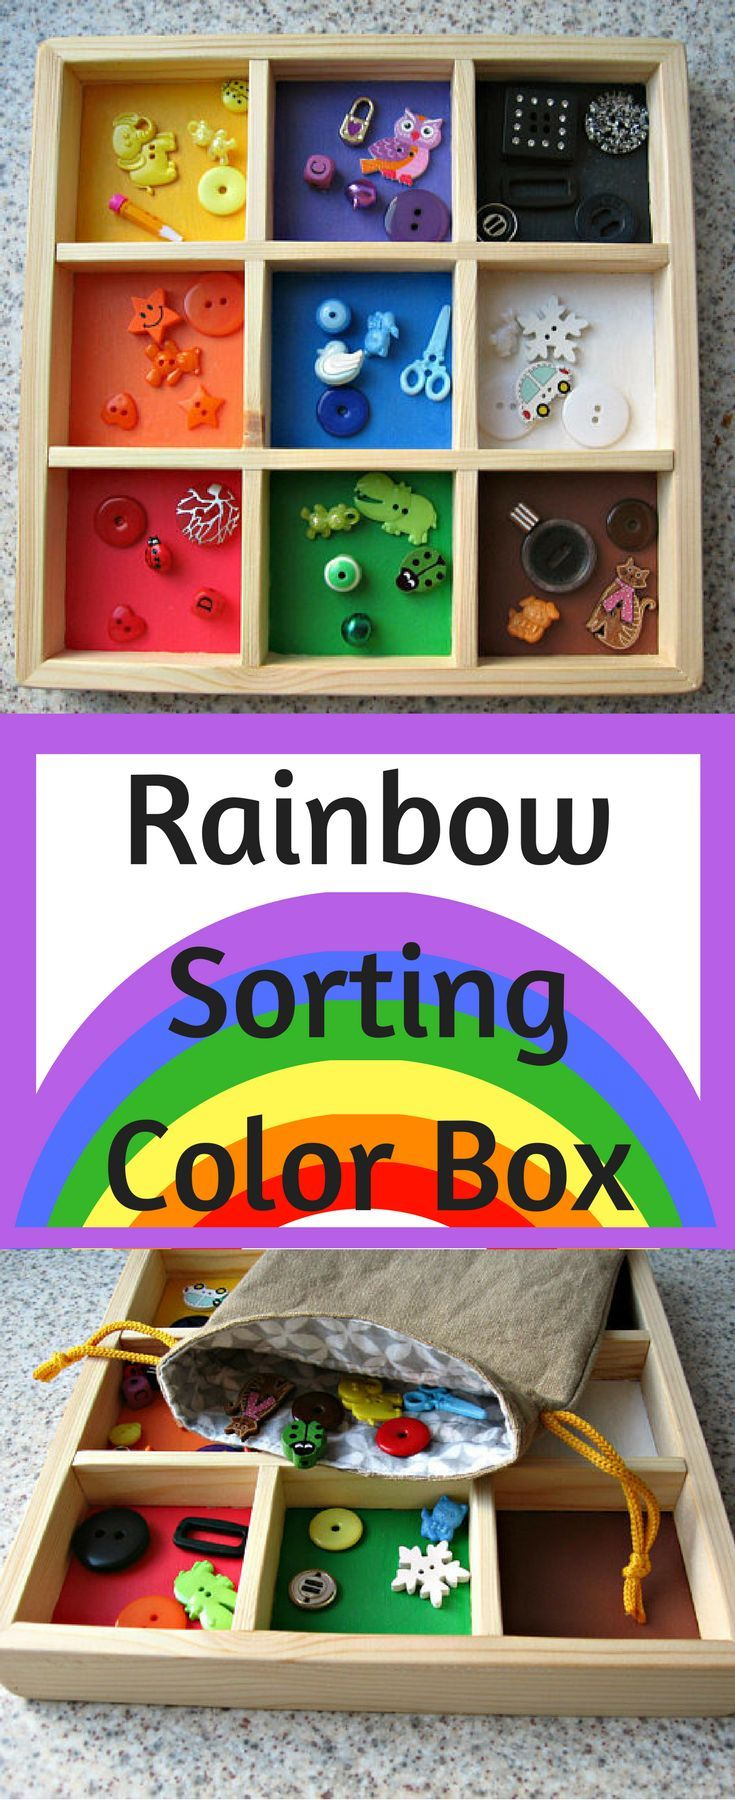 Rainbow Sorting Color Box - Practice sorting items by color and improve fine motor skills, learn colors, and practice counting. #etsy #handmade #waldorf #montessori #preK #kindergarten #ad